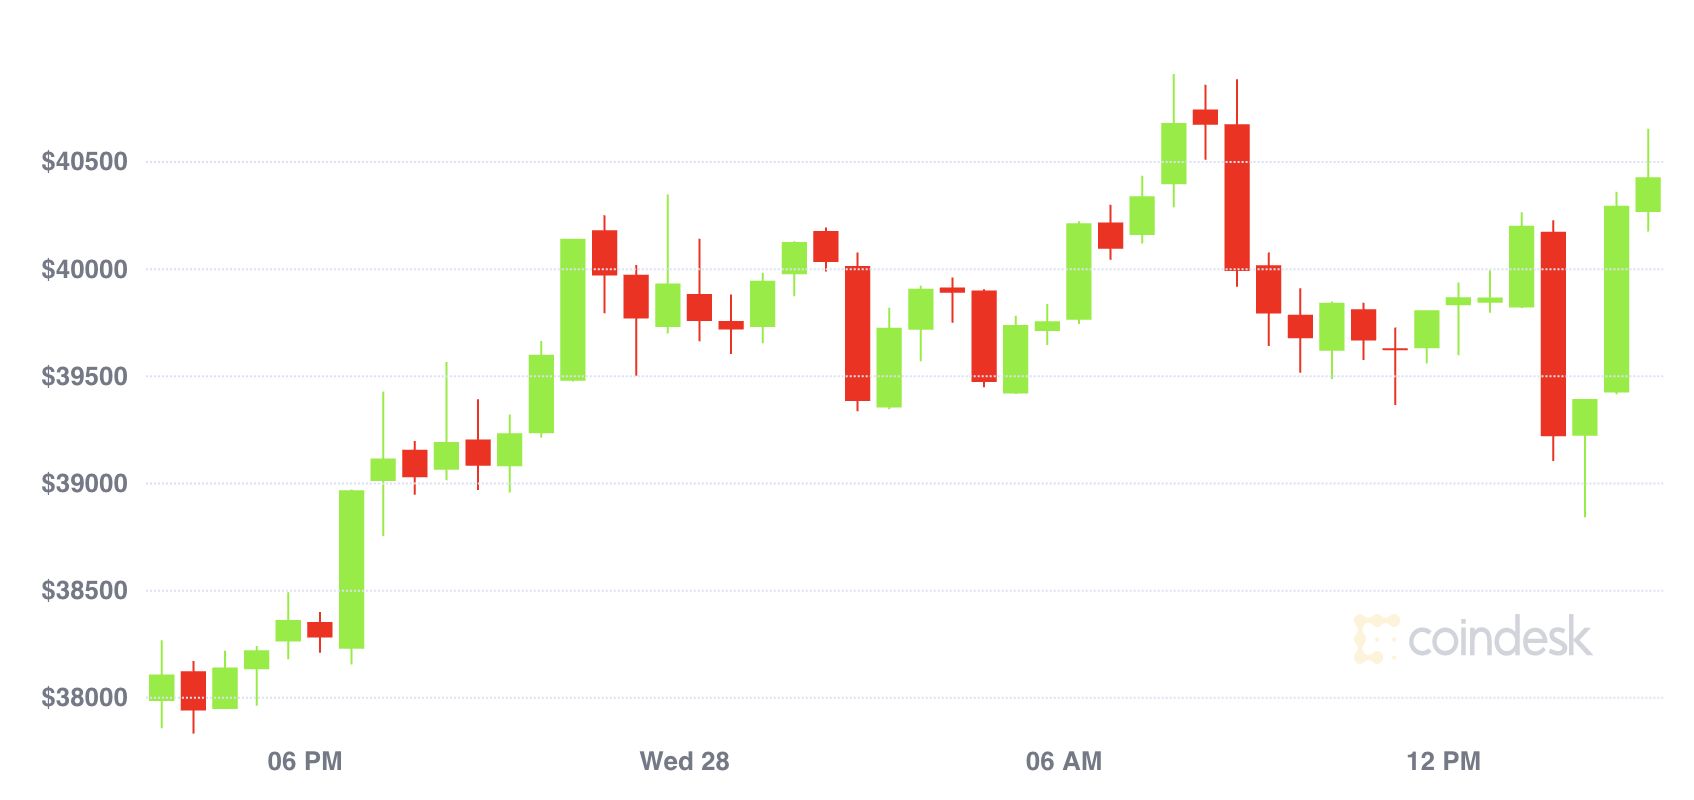 Market Wrap: Bitcoin Expected to Pause Before Next Rally